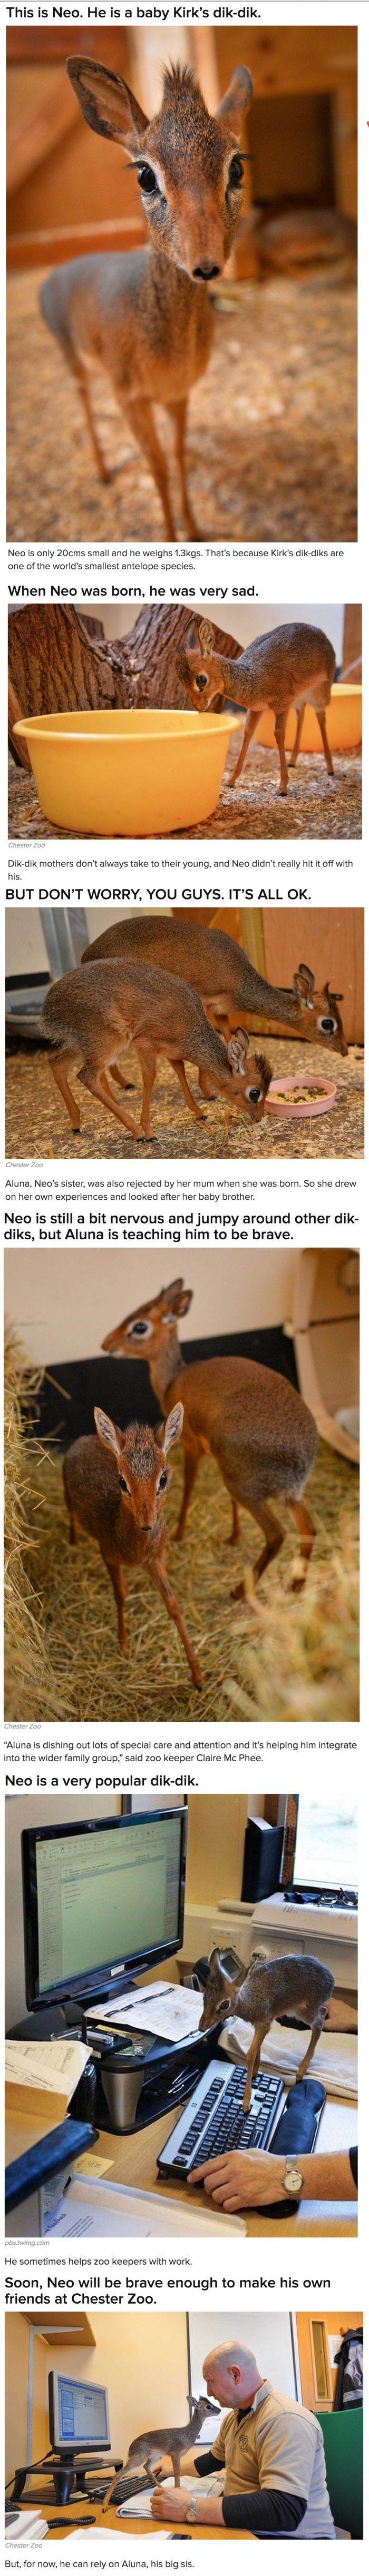 Incredible Story of Neo the Tiny Antelope